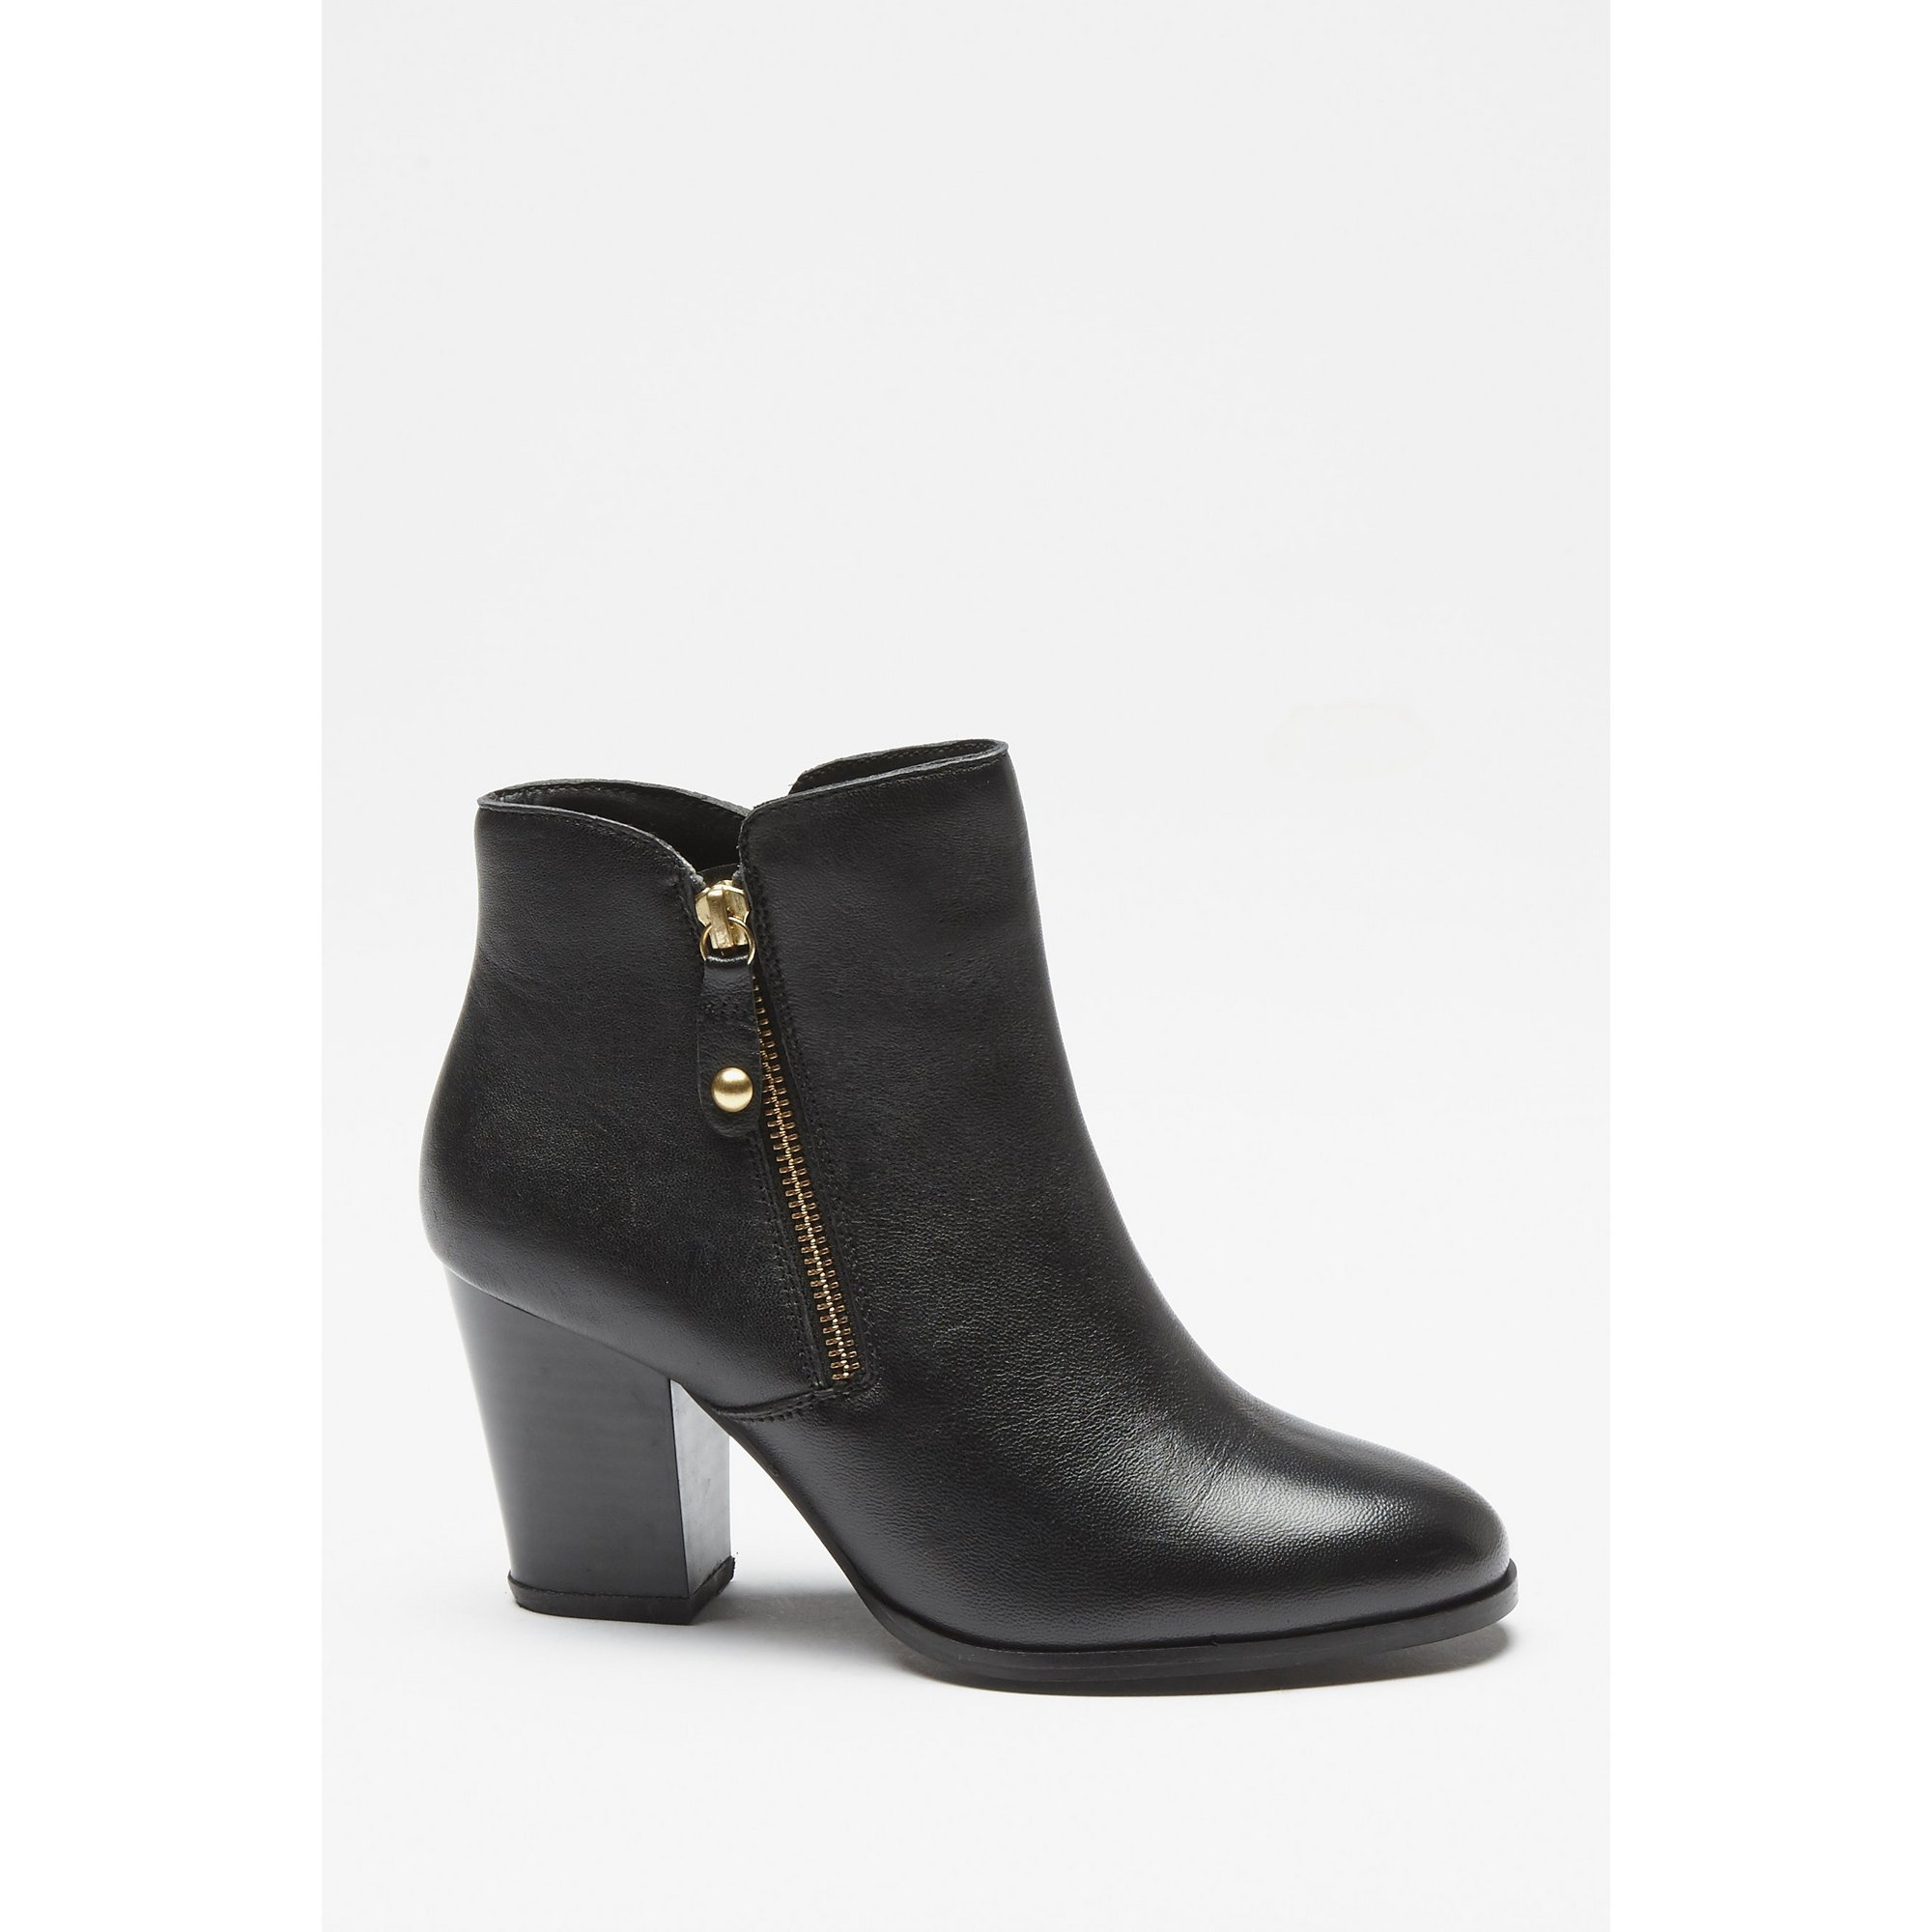 Image of Comfort Plus Black Heeled Zip Detail Ankle Boots